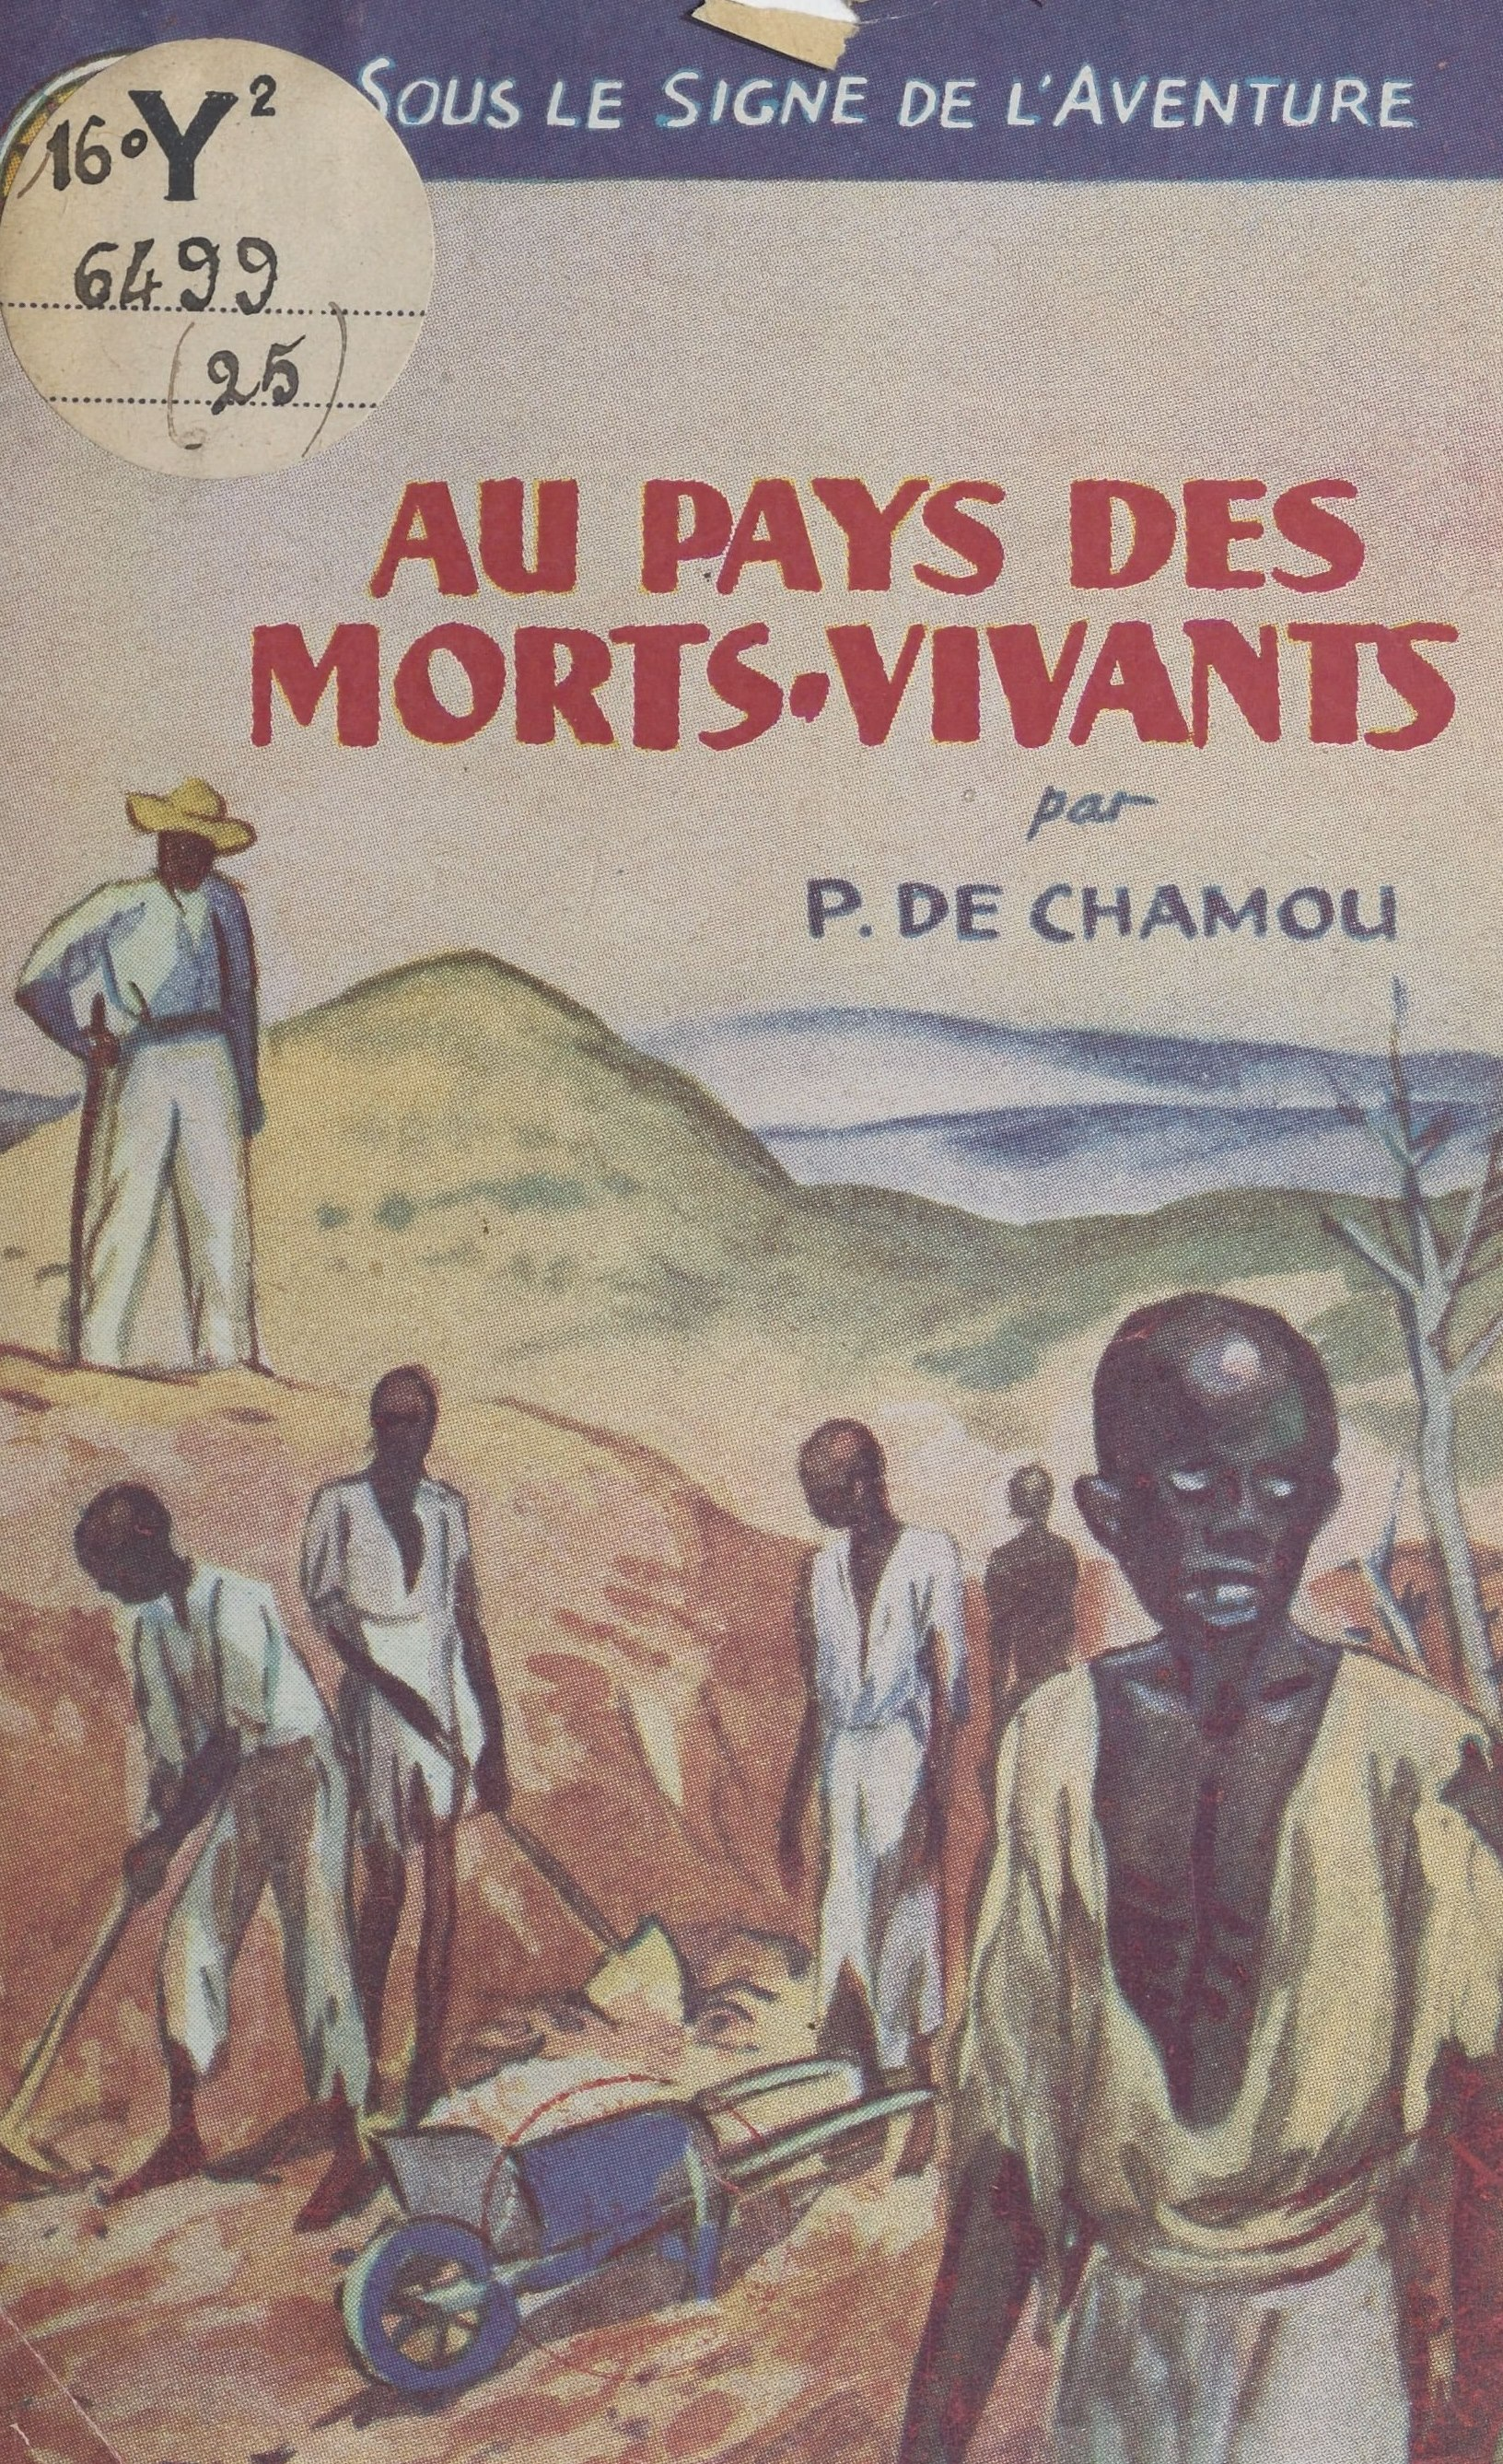 Au pays des morts-vivants